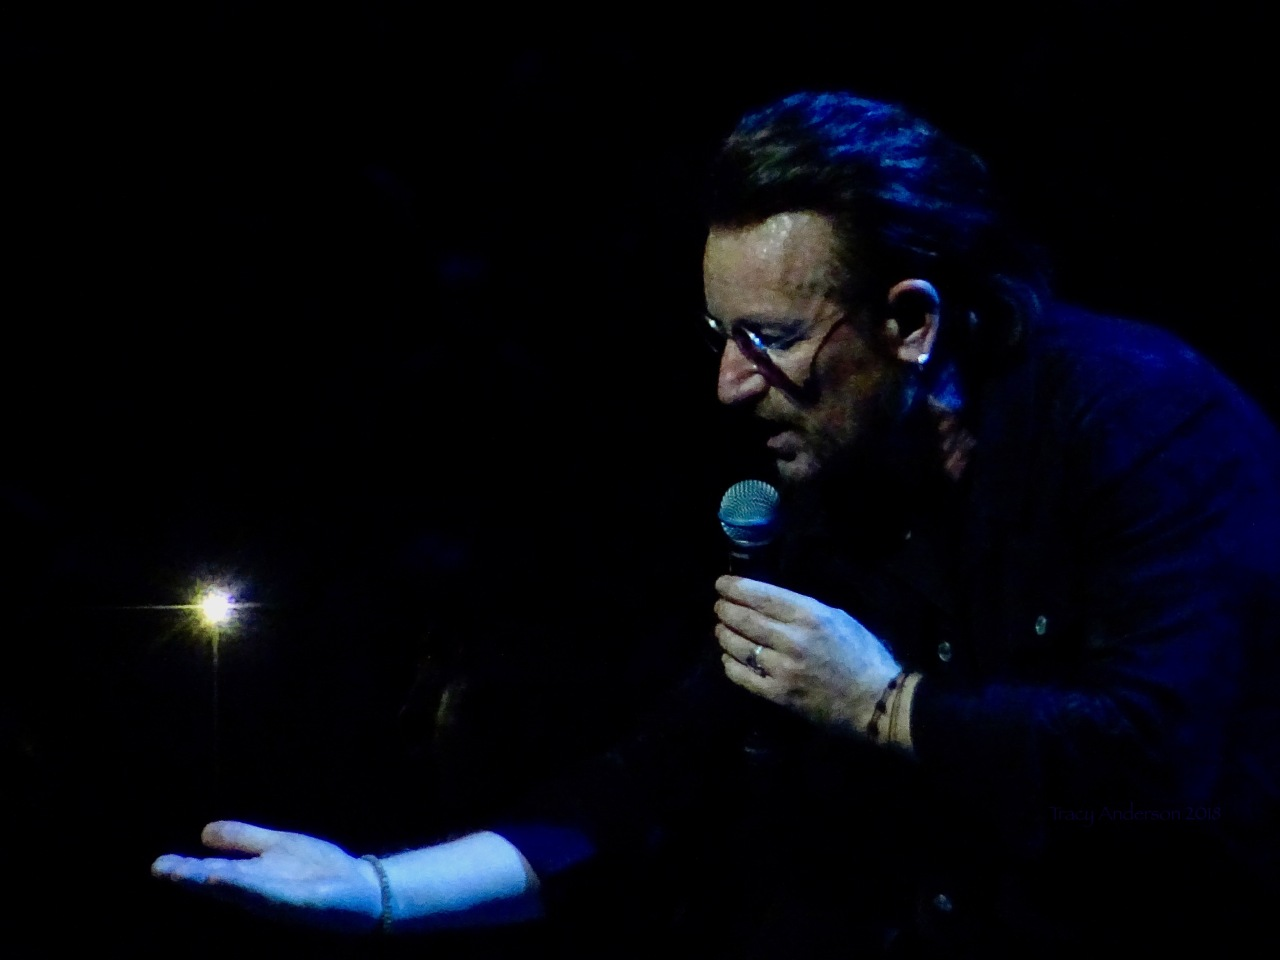 Bono holding star U2 eXPERIENCE & iNNOCENCE Tour NJ June 29 2018